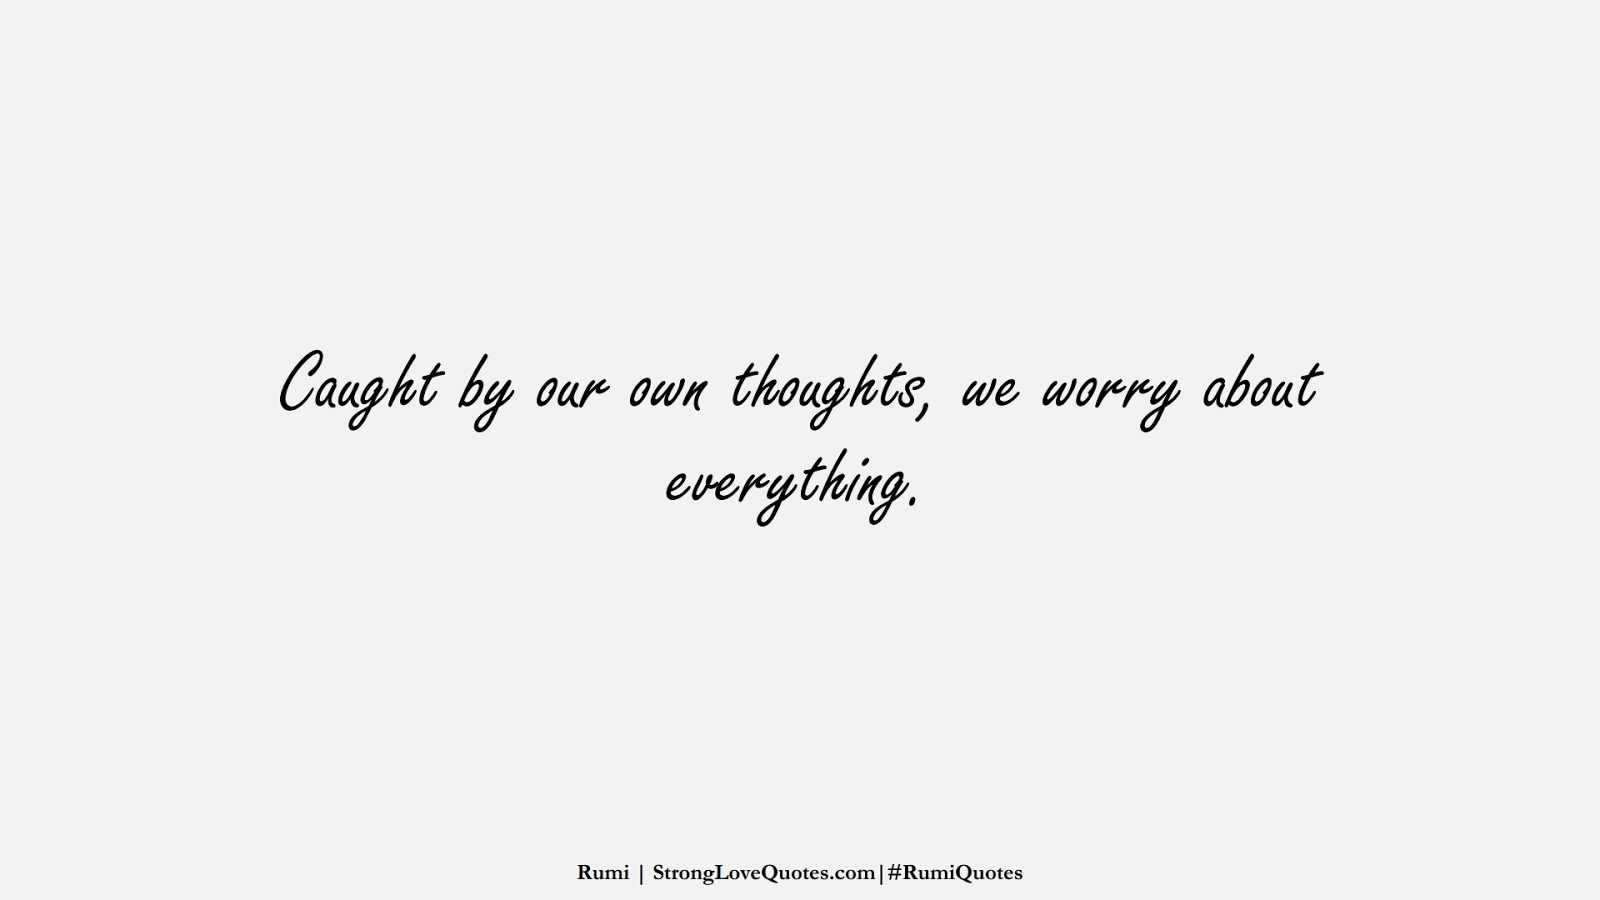 Caught by our own thoughts, we worry about everything. (Rumi);  #RumiQuotes